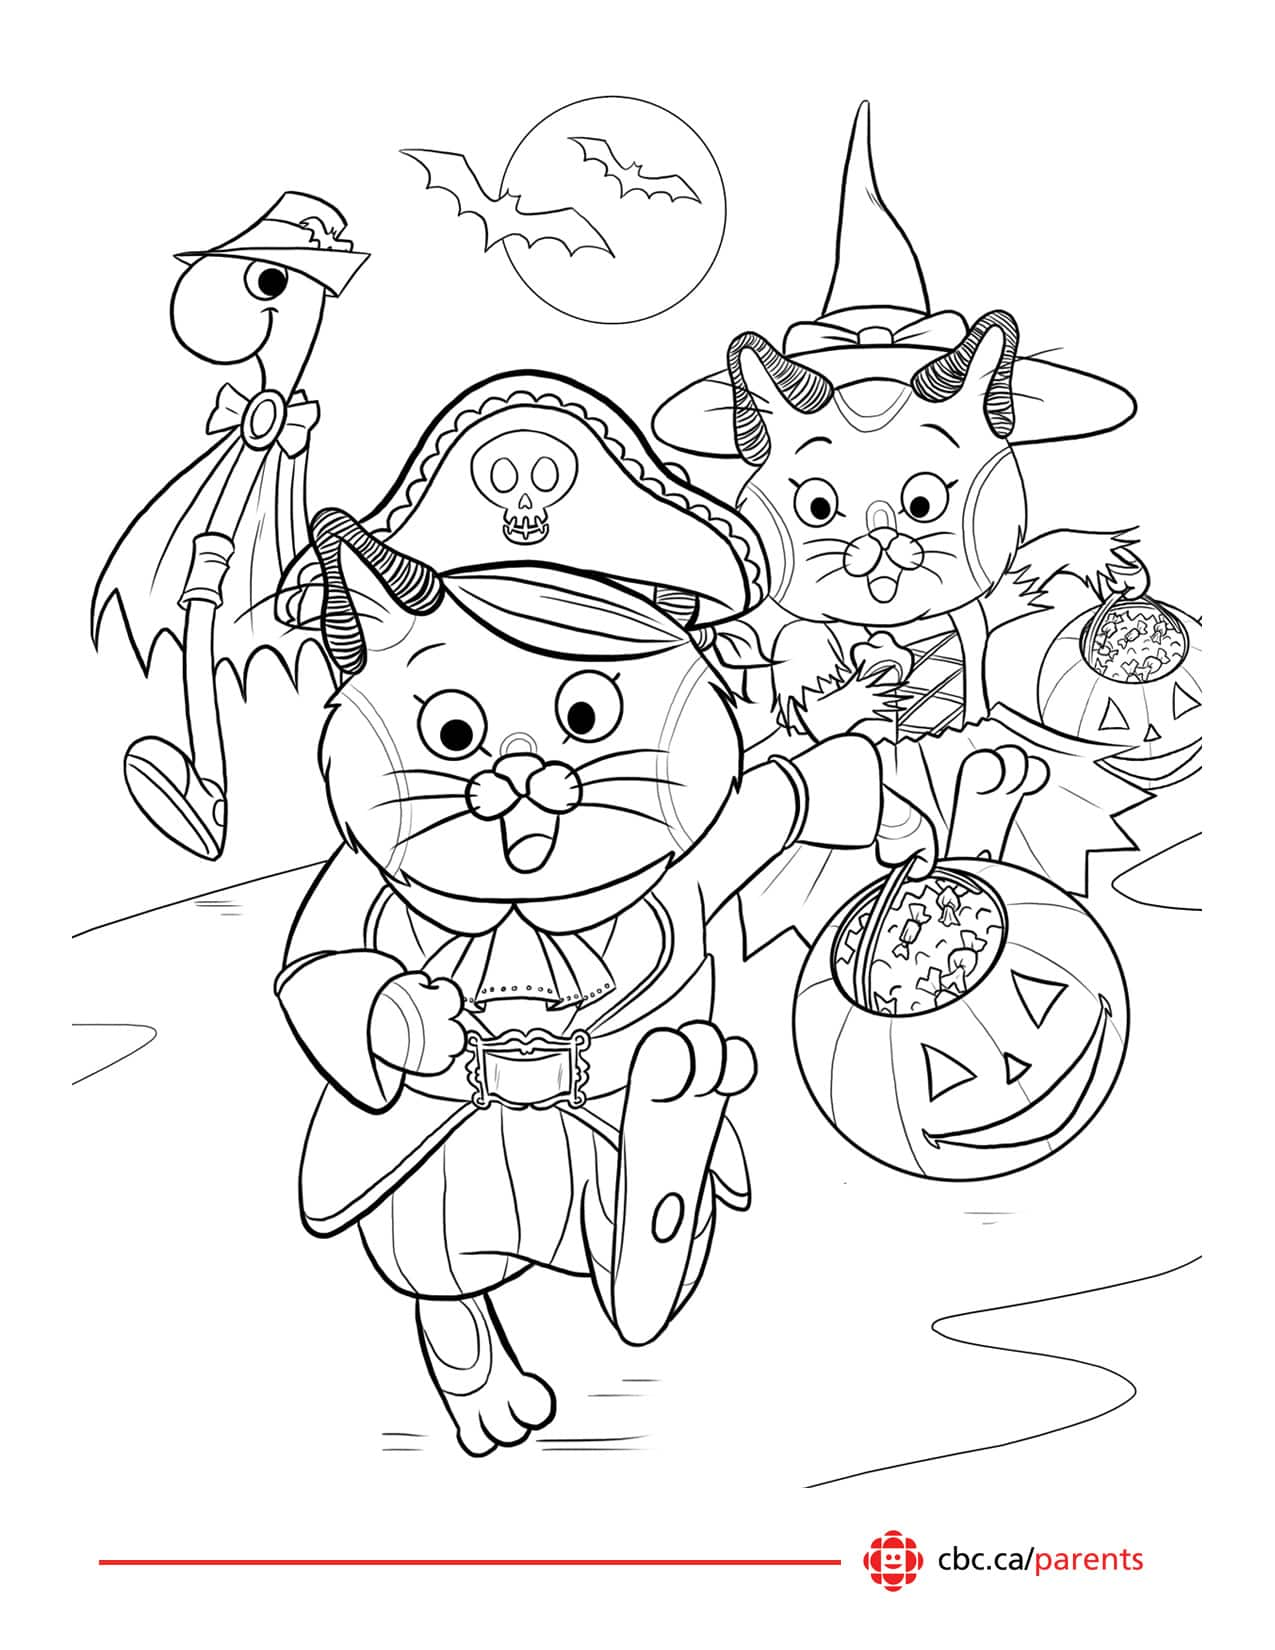 printable halloween colouring pages play cbc parents